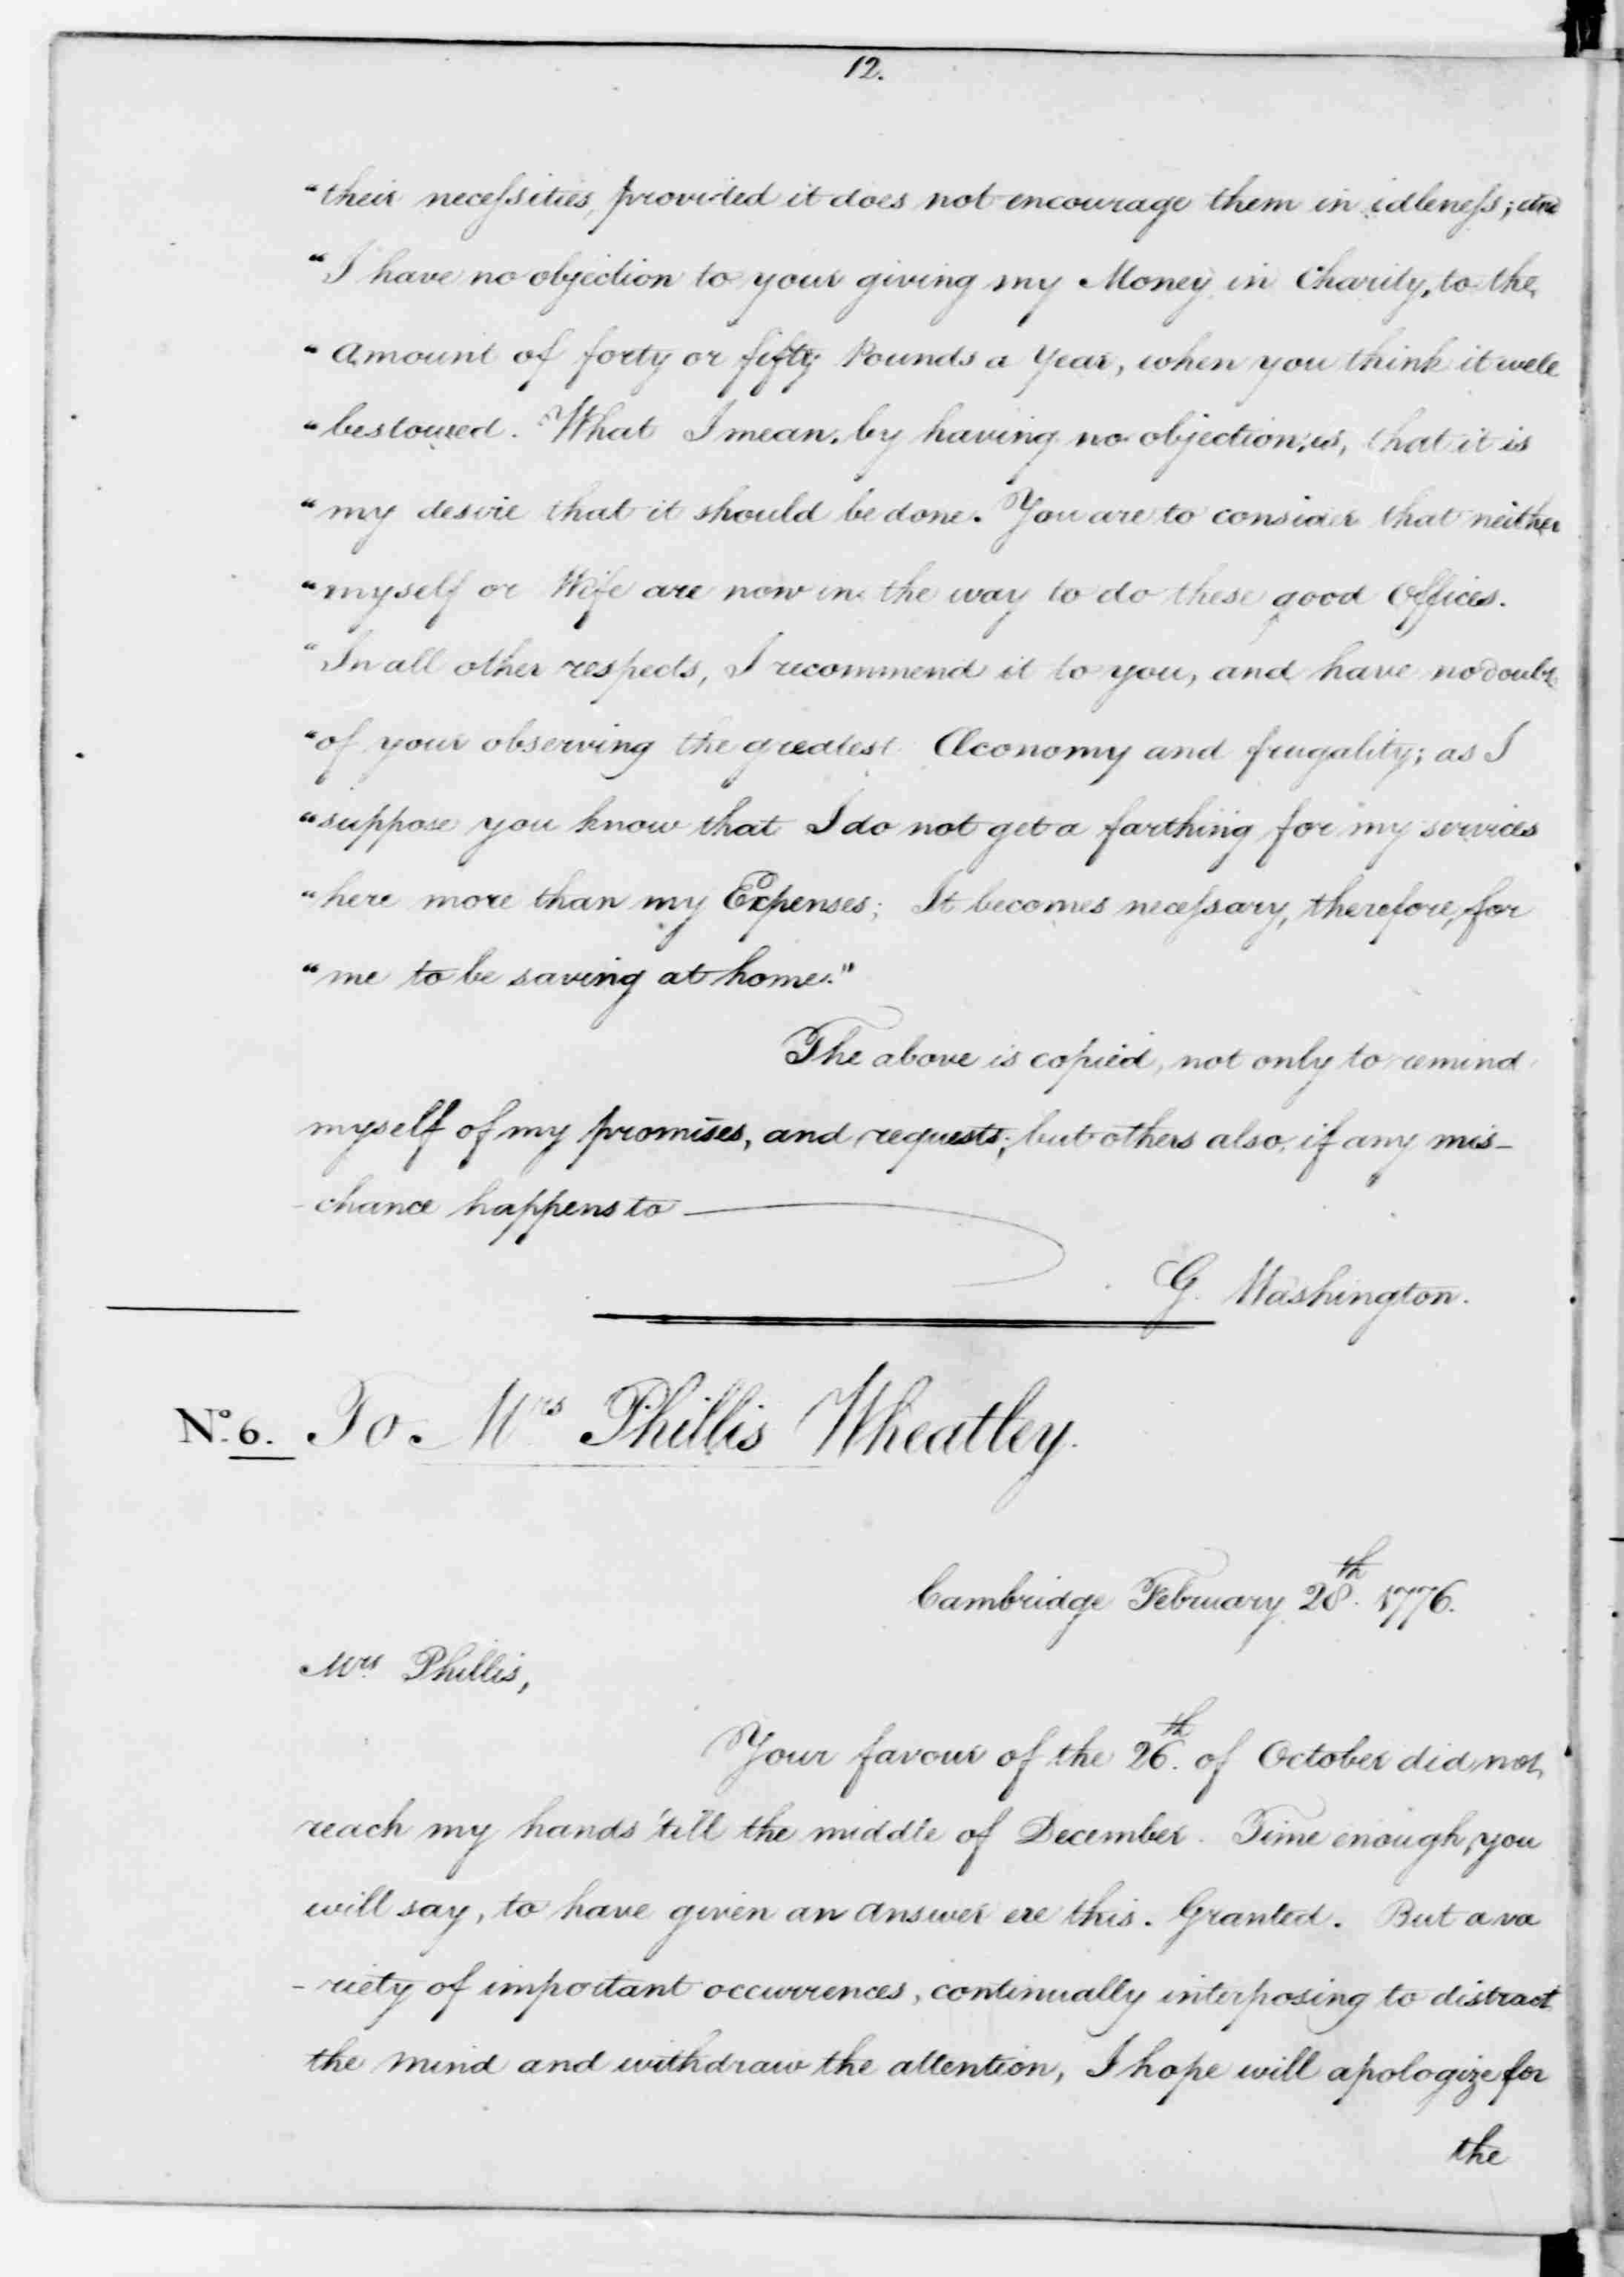 George Washington S Letter To Phillis Wheatley February 28 1776